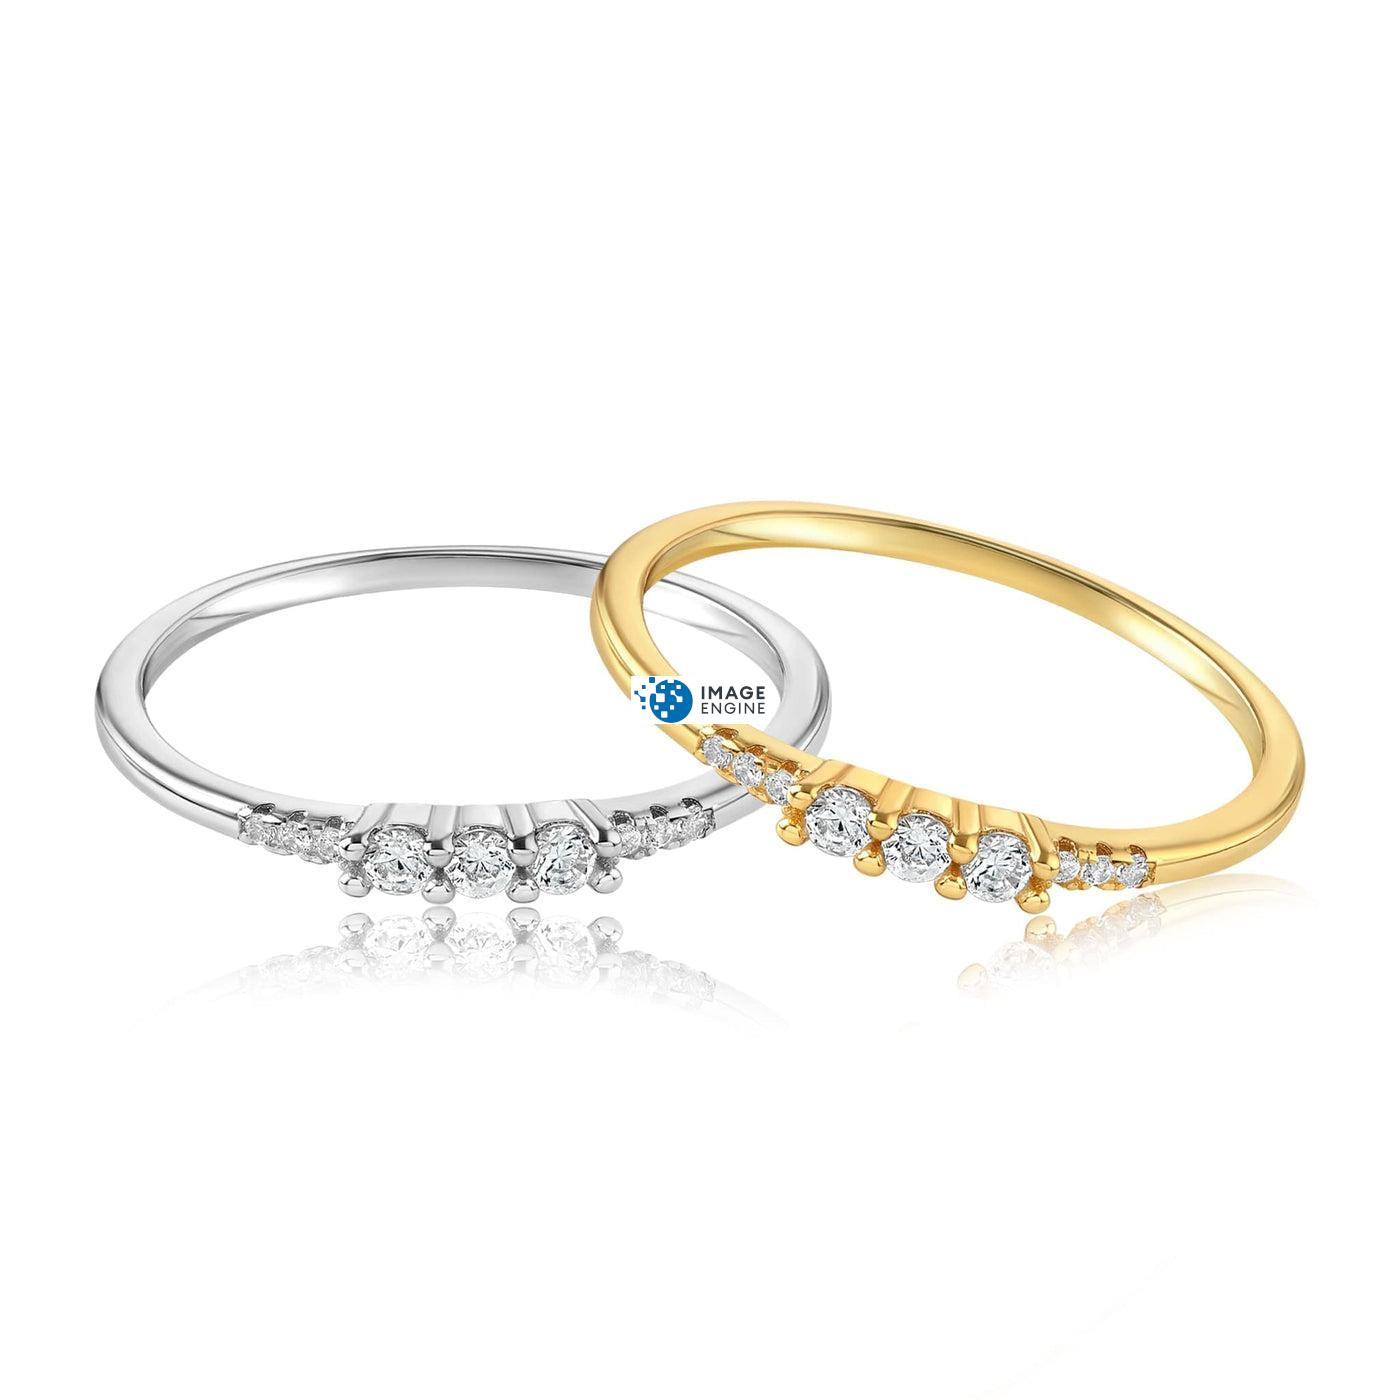 Emie Ring - Front View Side by Side - 18K Yellow Gold Vermeil and 925 Sterling Silver